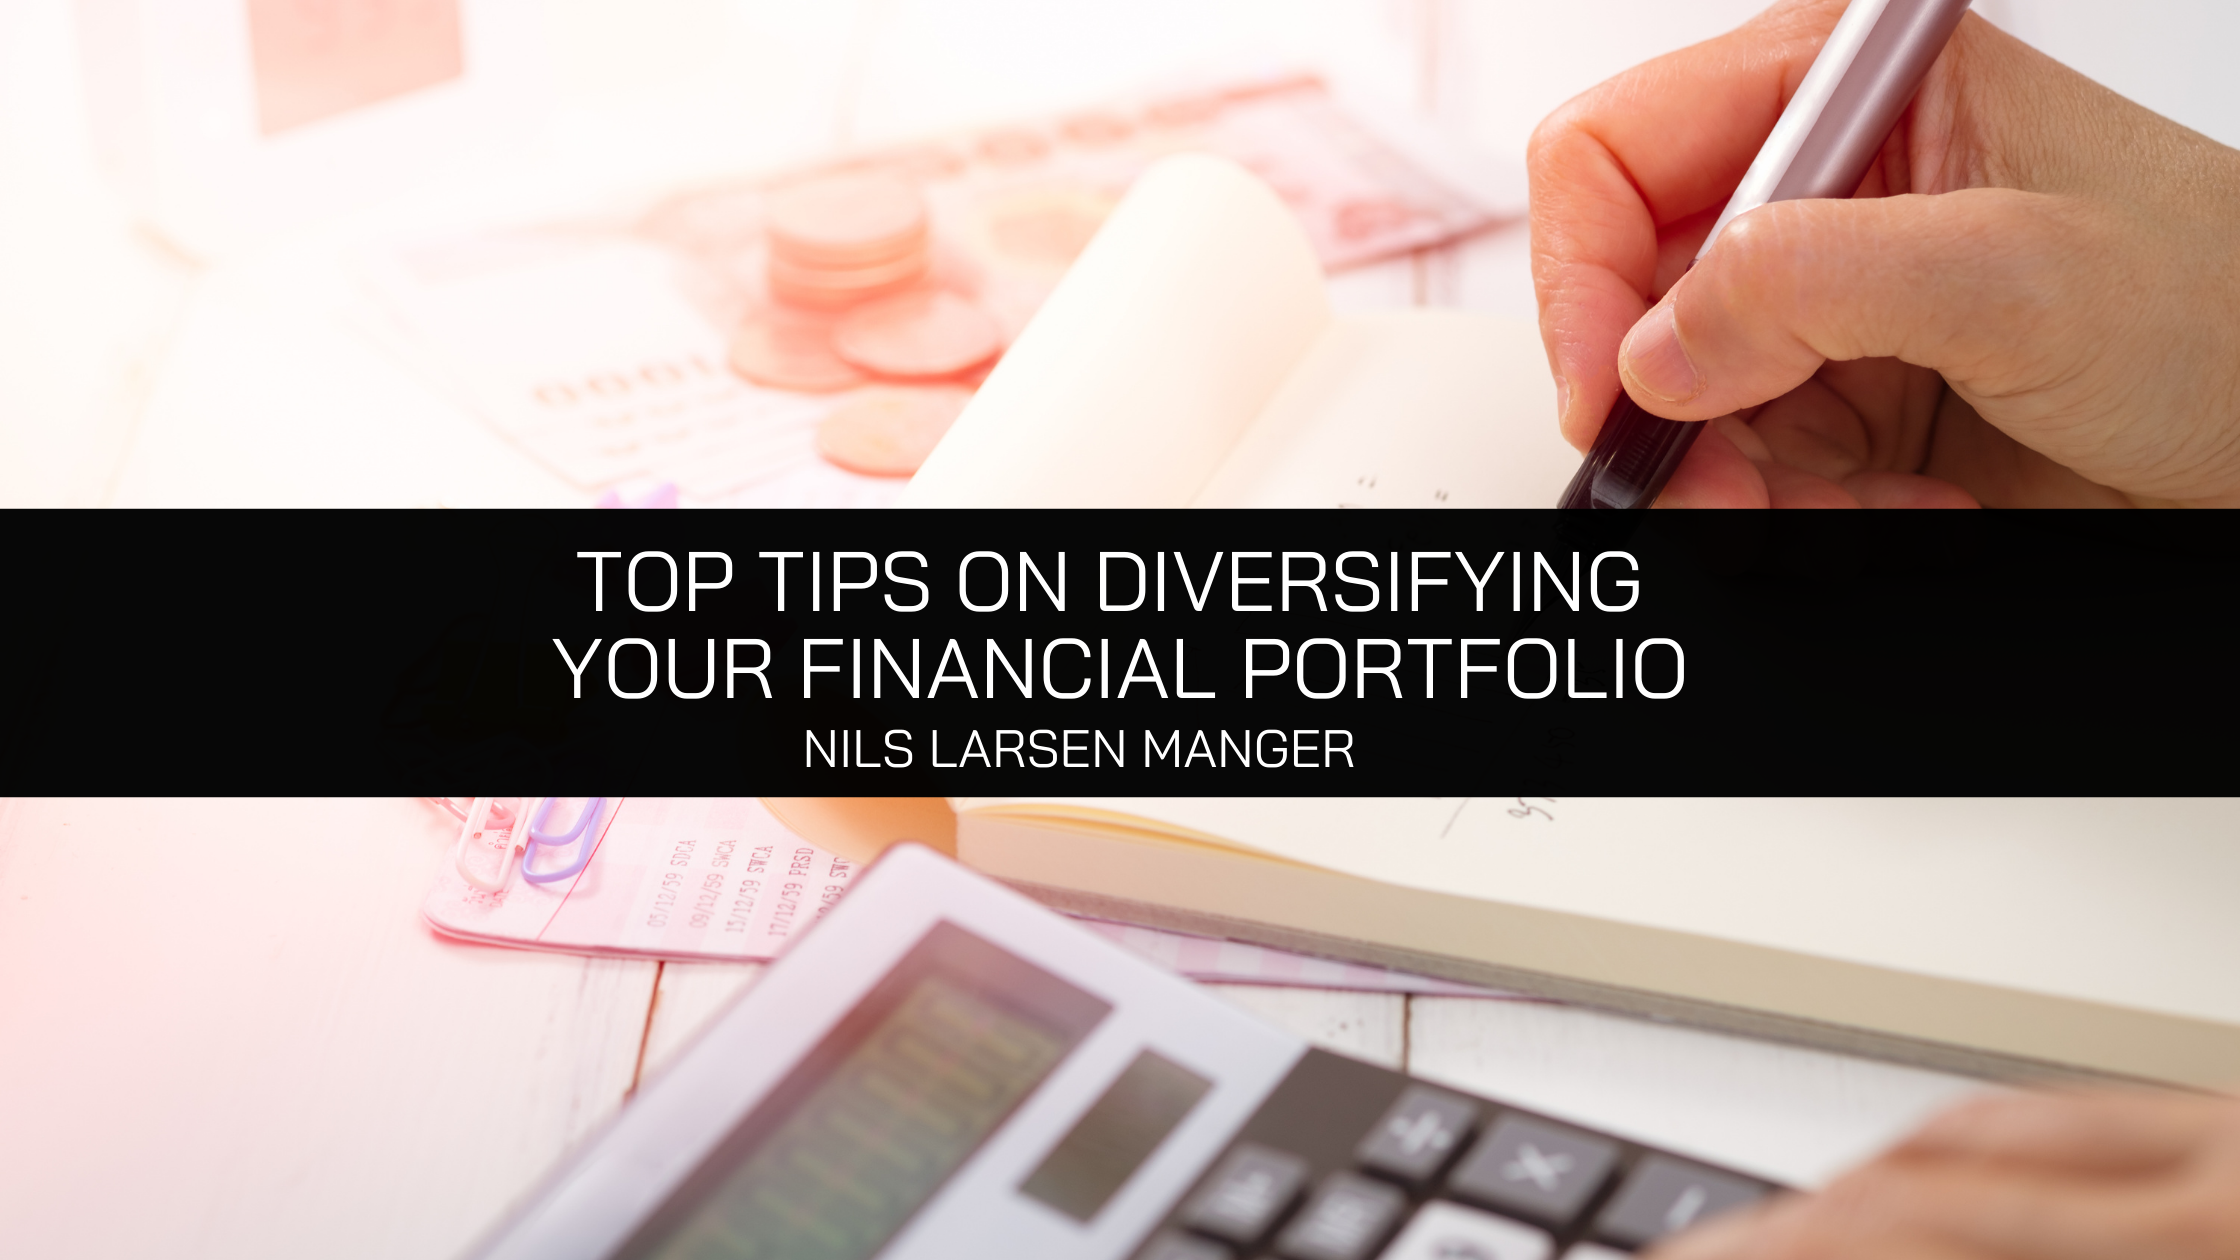 Nils Larsen Manager Shares His Top Tips On Diversifying Your Financial Portfolio